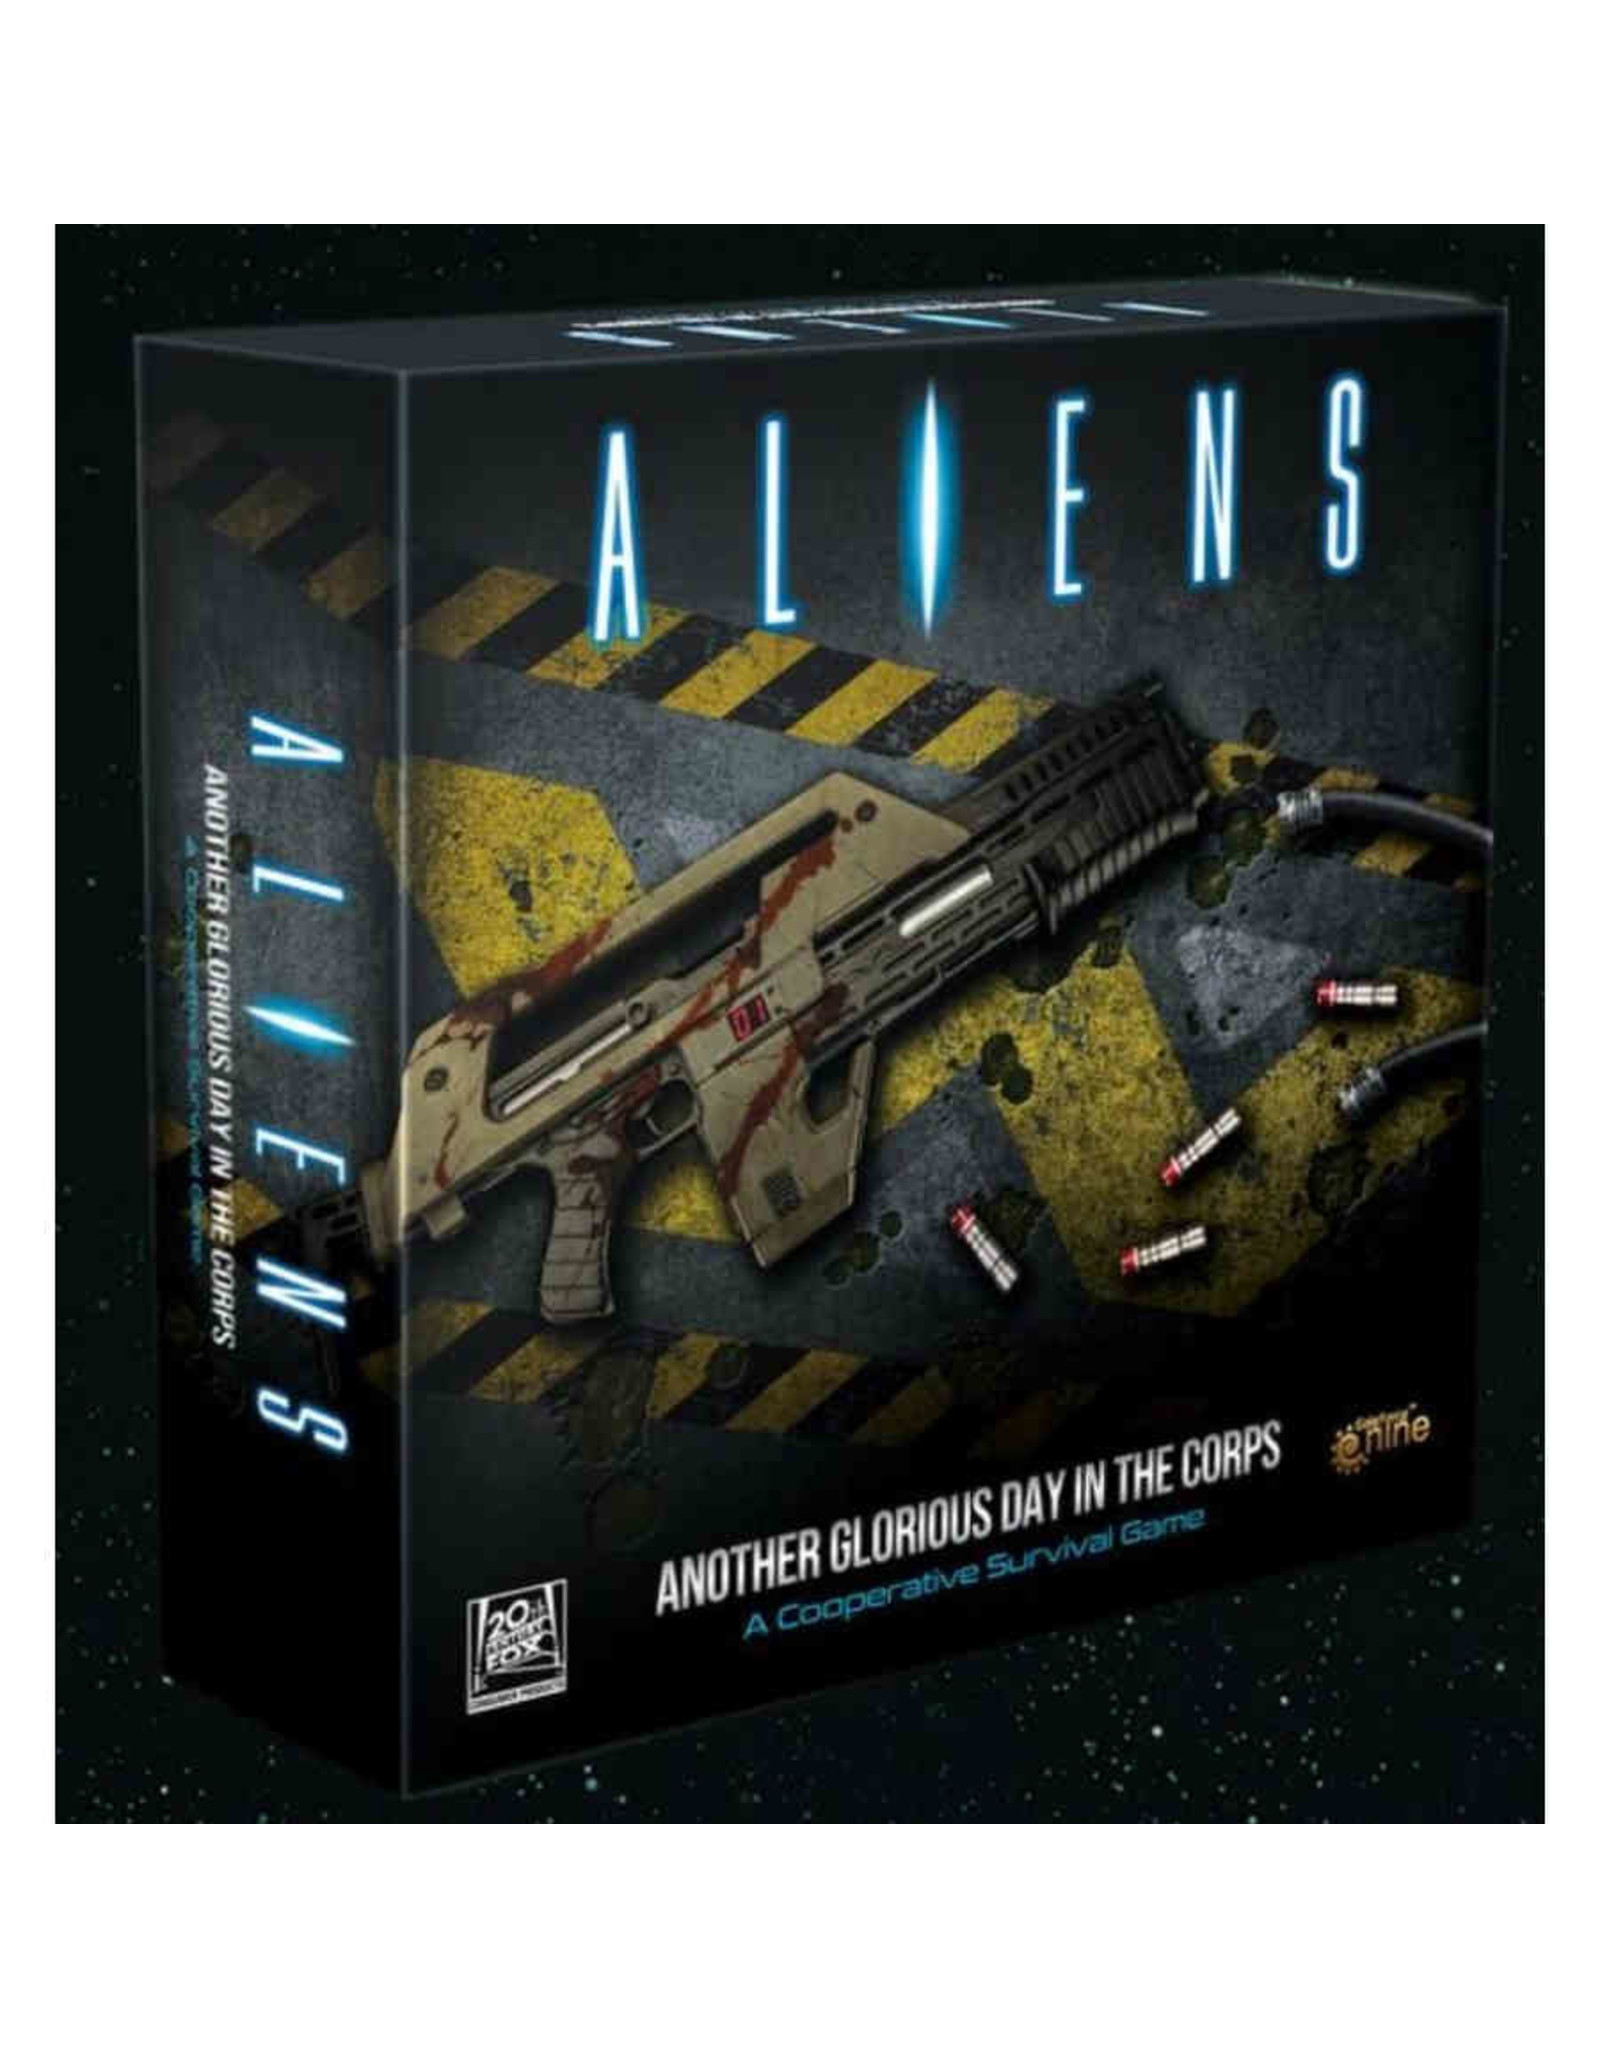 GaleForce nine Aliens: Another Glorious Day in the Corps